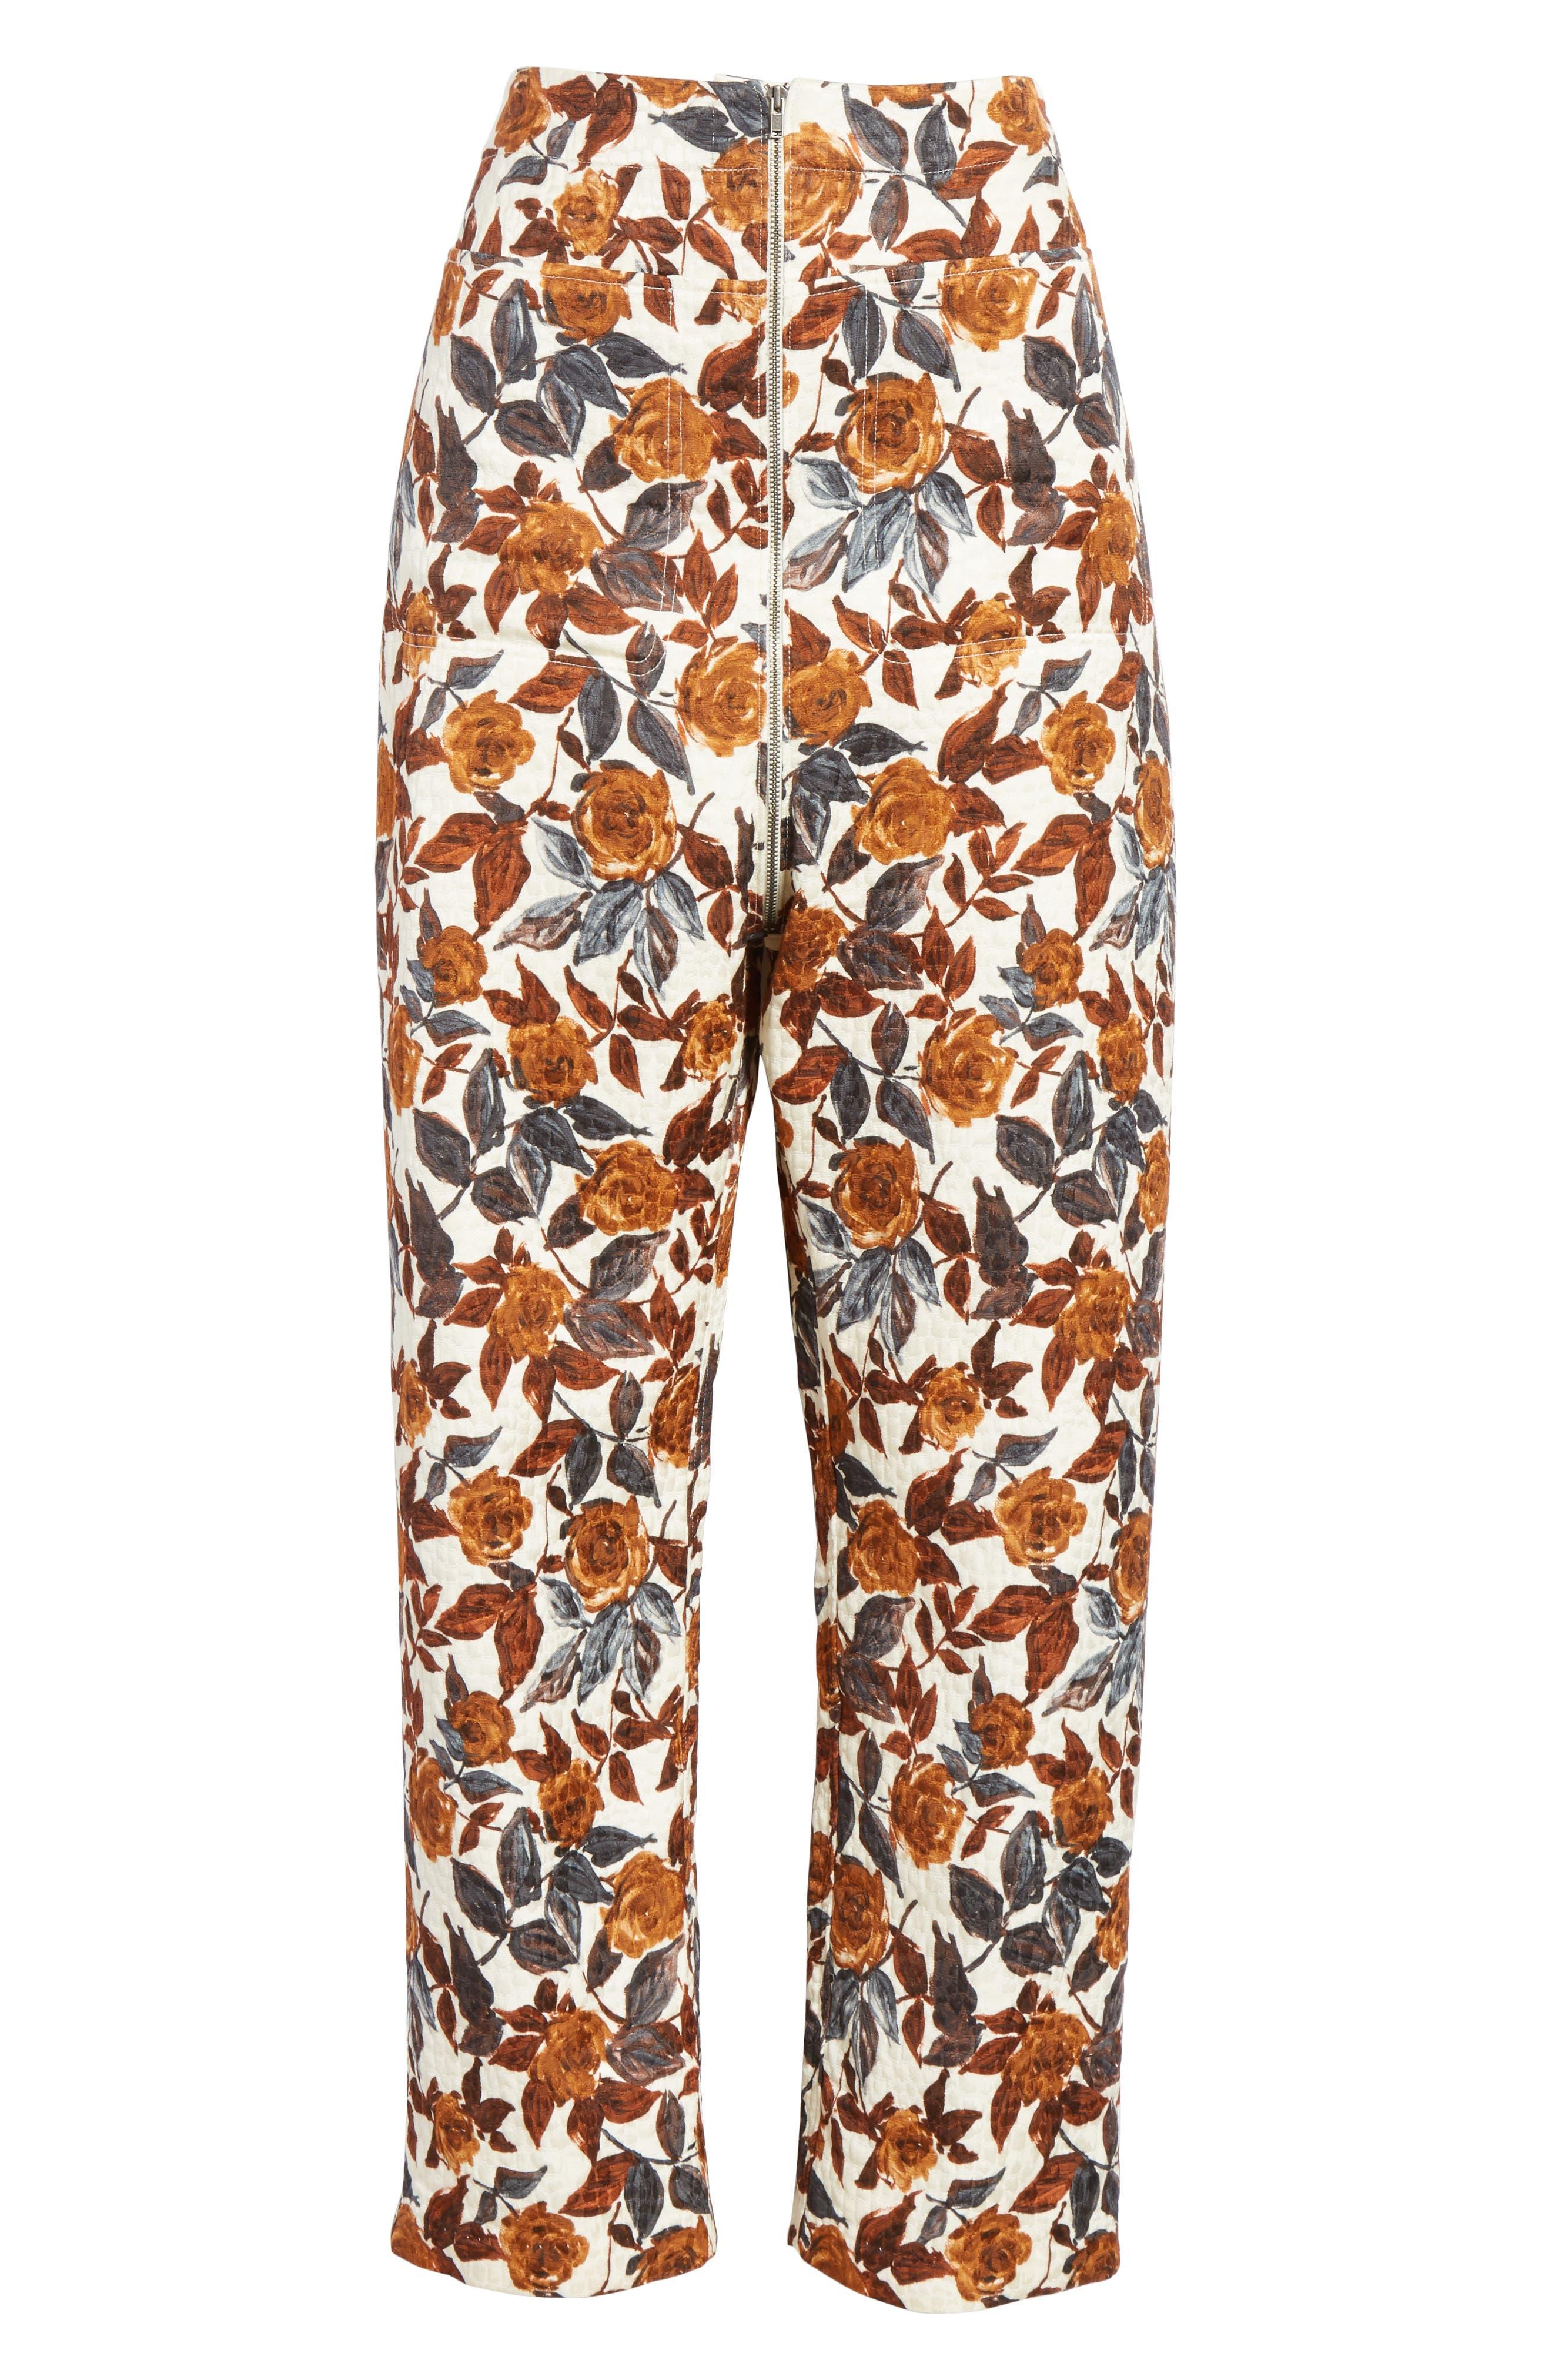 Barrie Floral Print Pants,                             Alternate thumbnail 6, color,                             BROWN